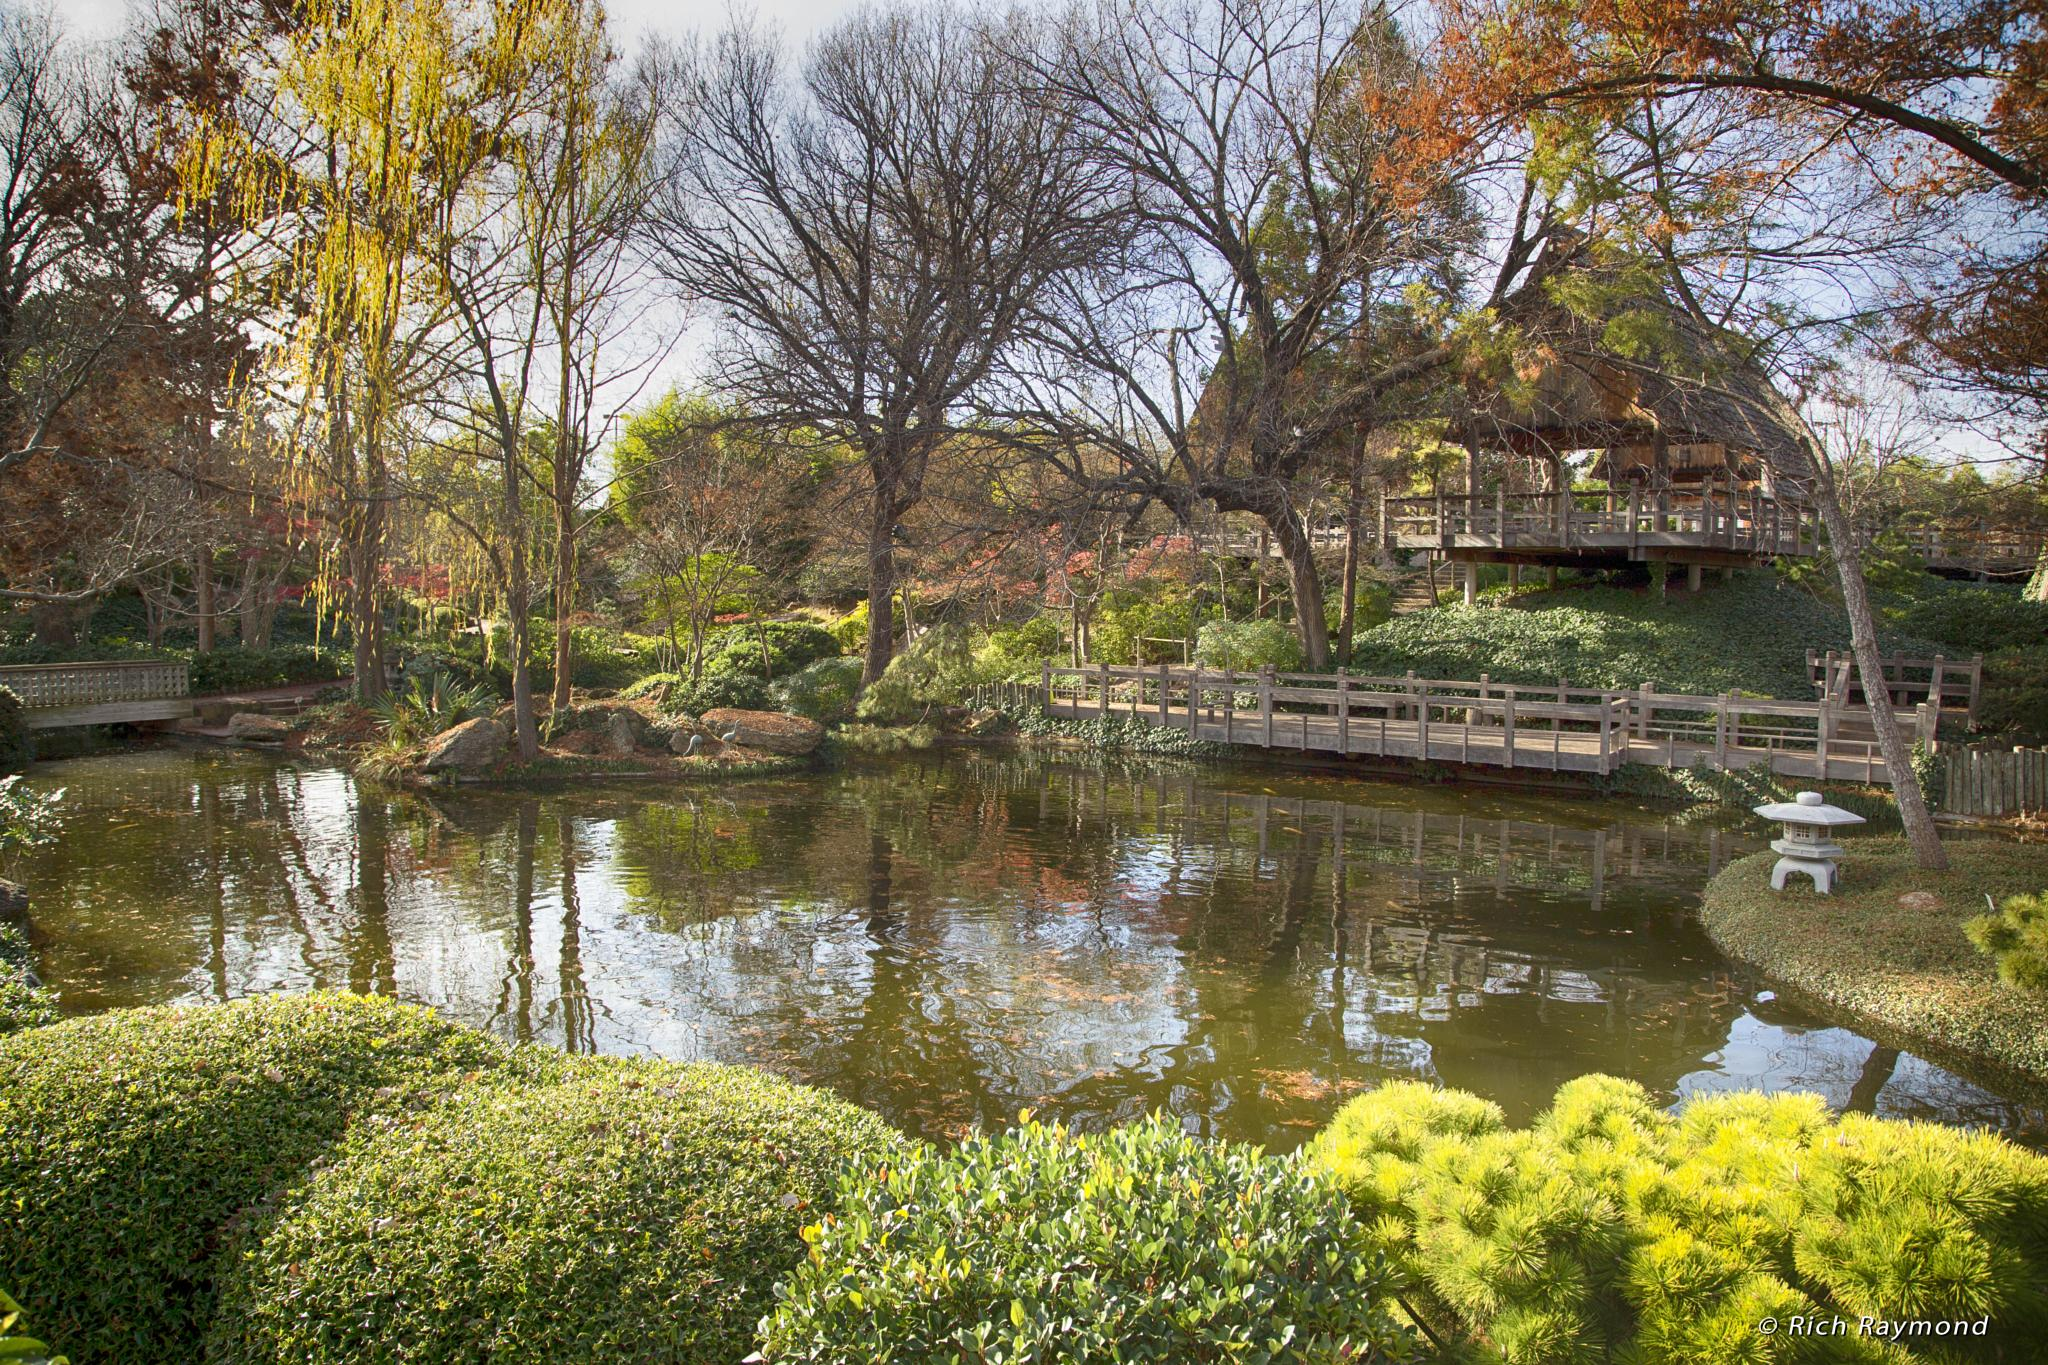 Japanese Gardens Botanical Gardens Fort Worth Texas by RichRaymondFromNJ